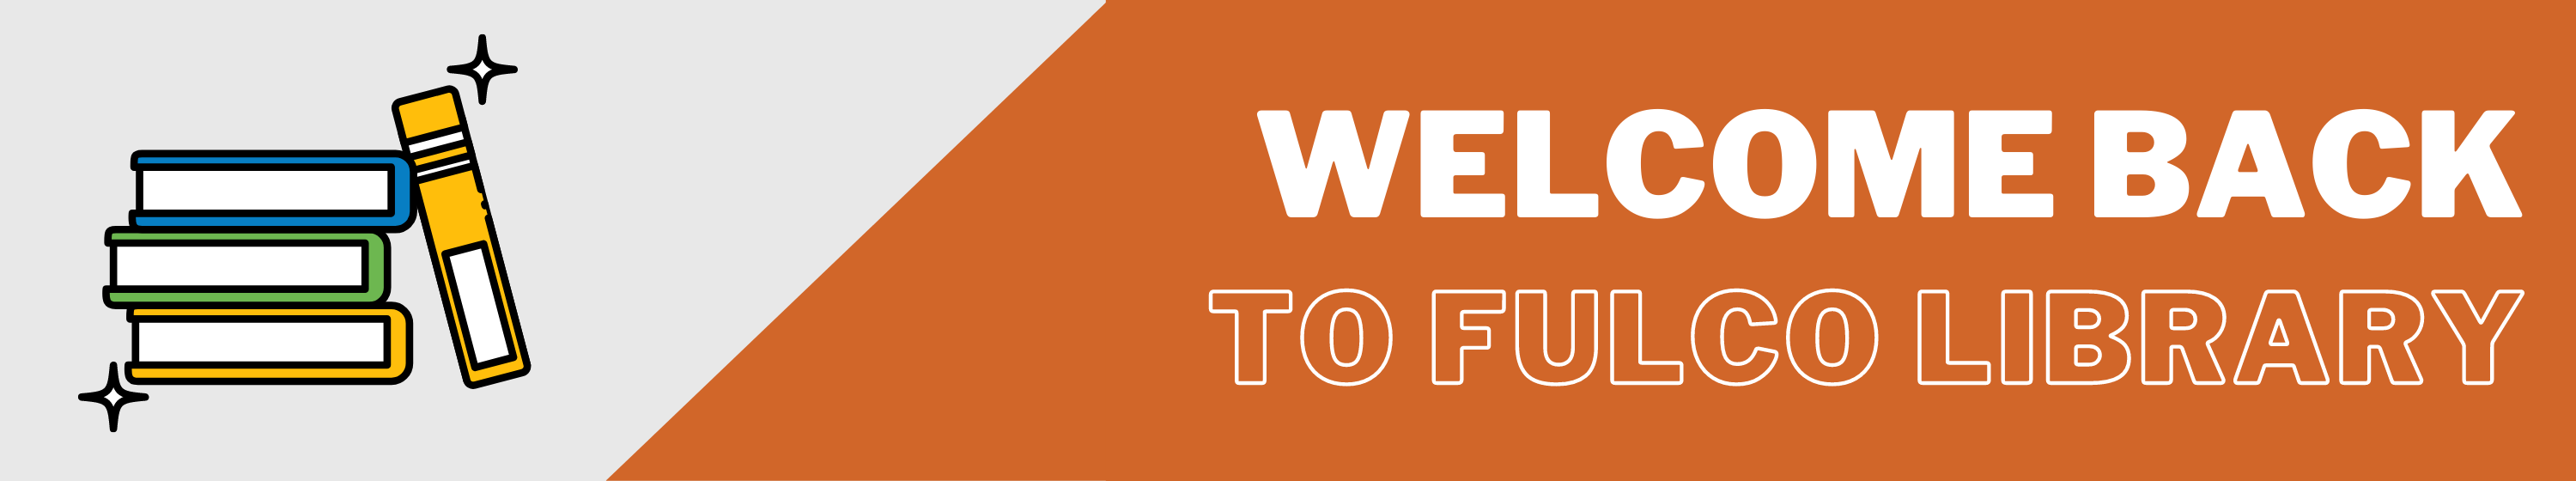 Welcome Back to FulcoLibrary Banner, orange banner with gray background, yellow green blue books, white words welcome back to fulcolibrary